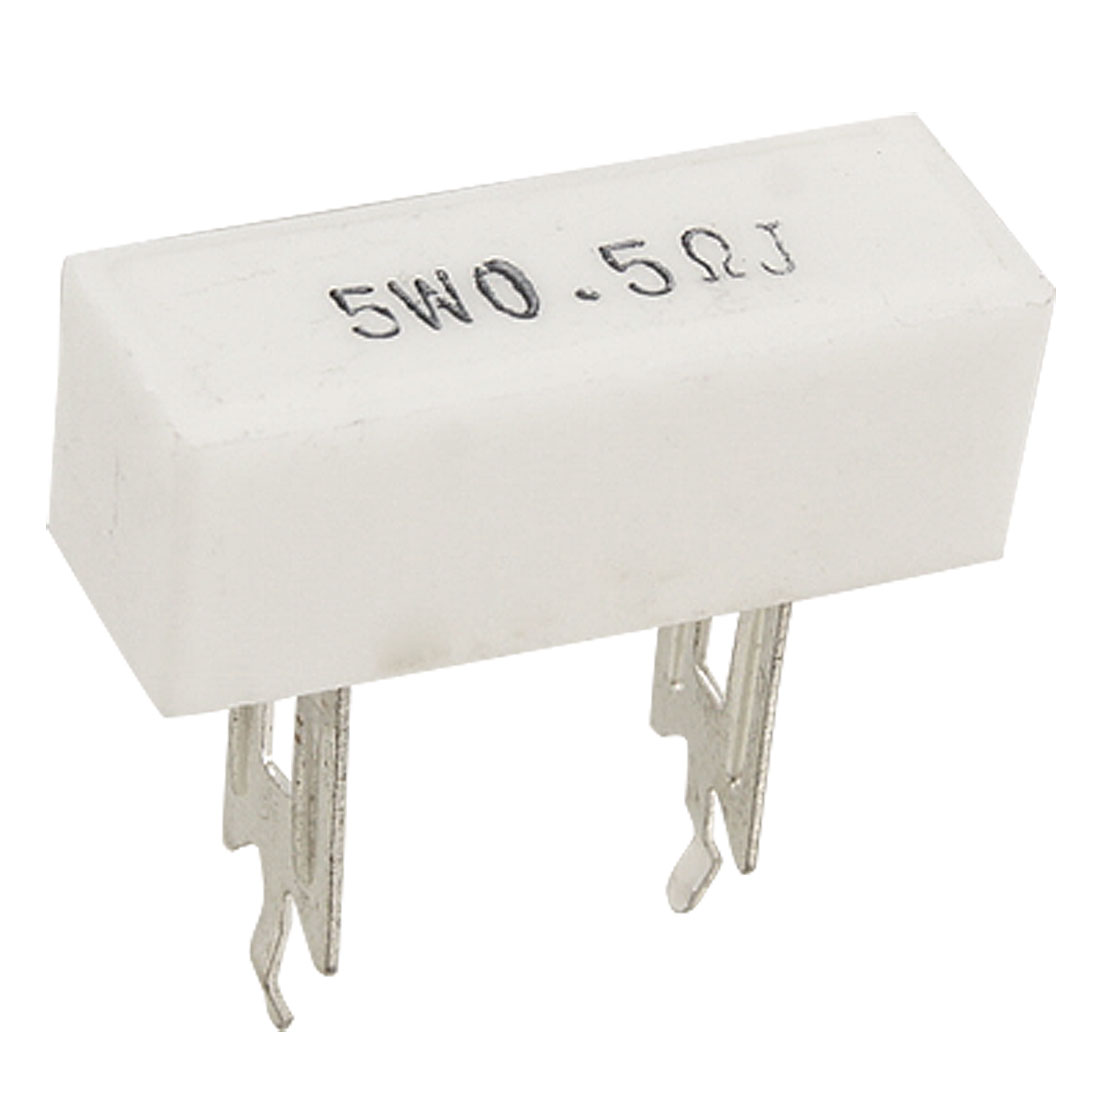 10 Pcs 5W 0.5 Ohm 5% DIP Wirewound Ceramic Cement Resistor